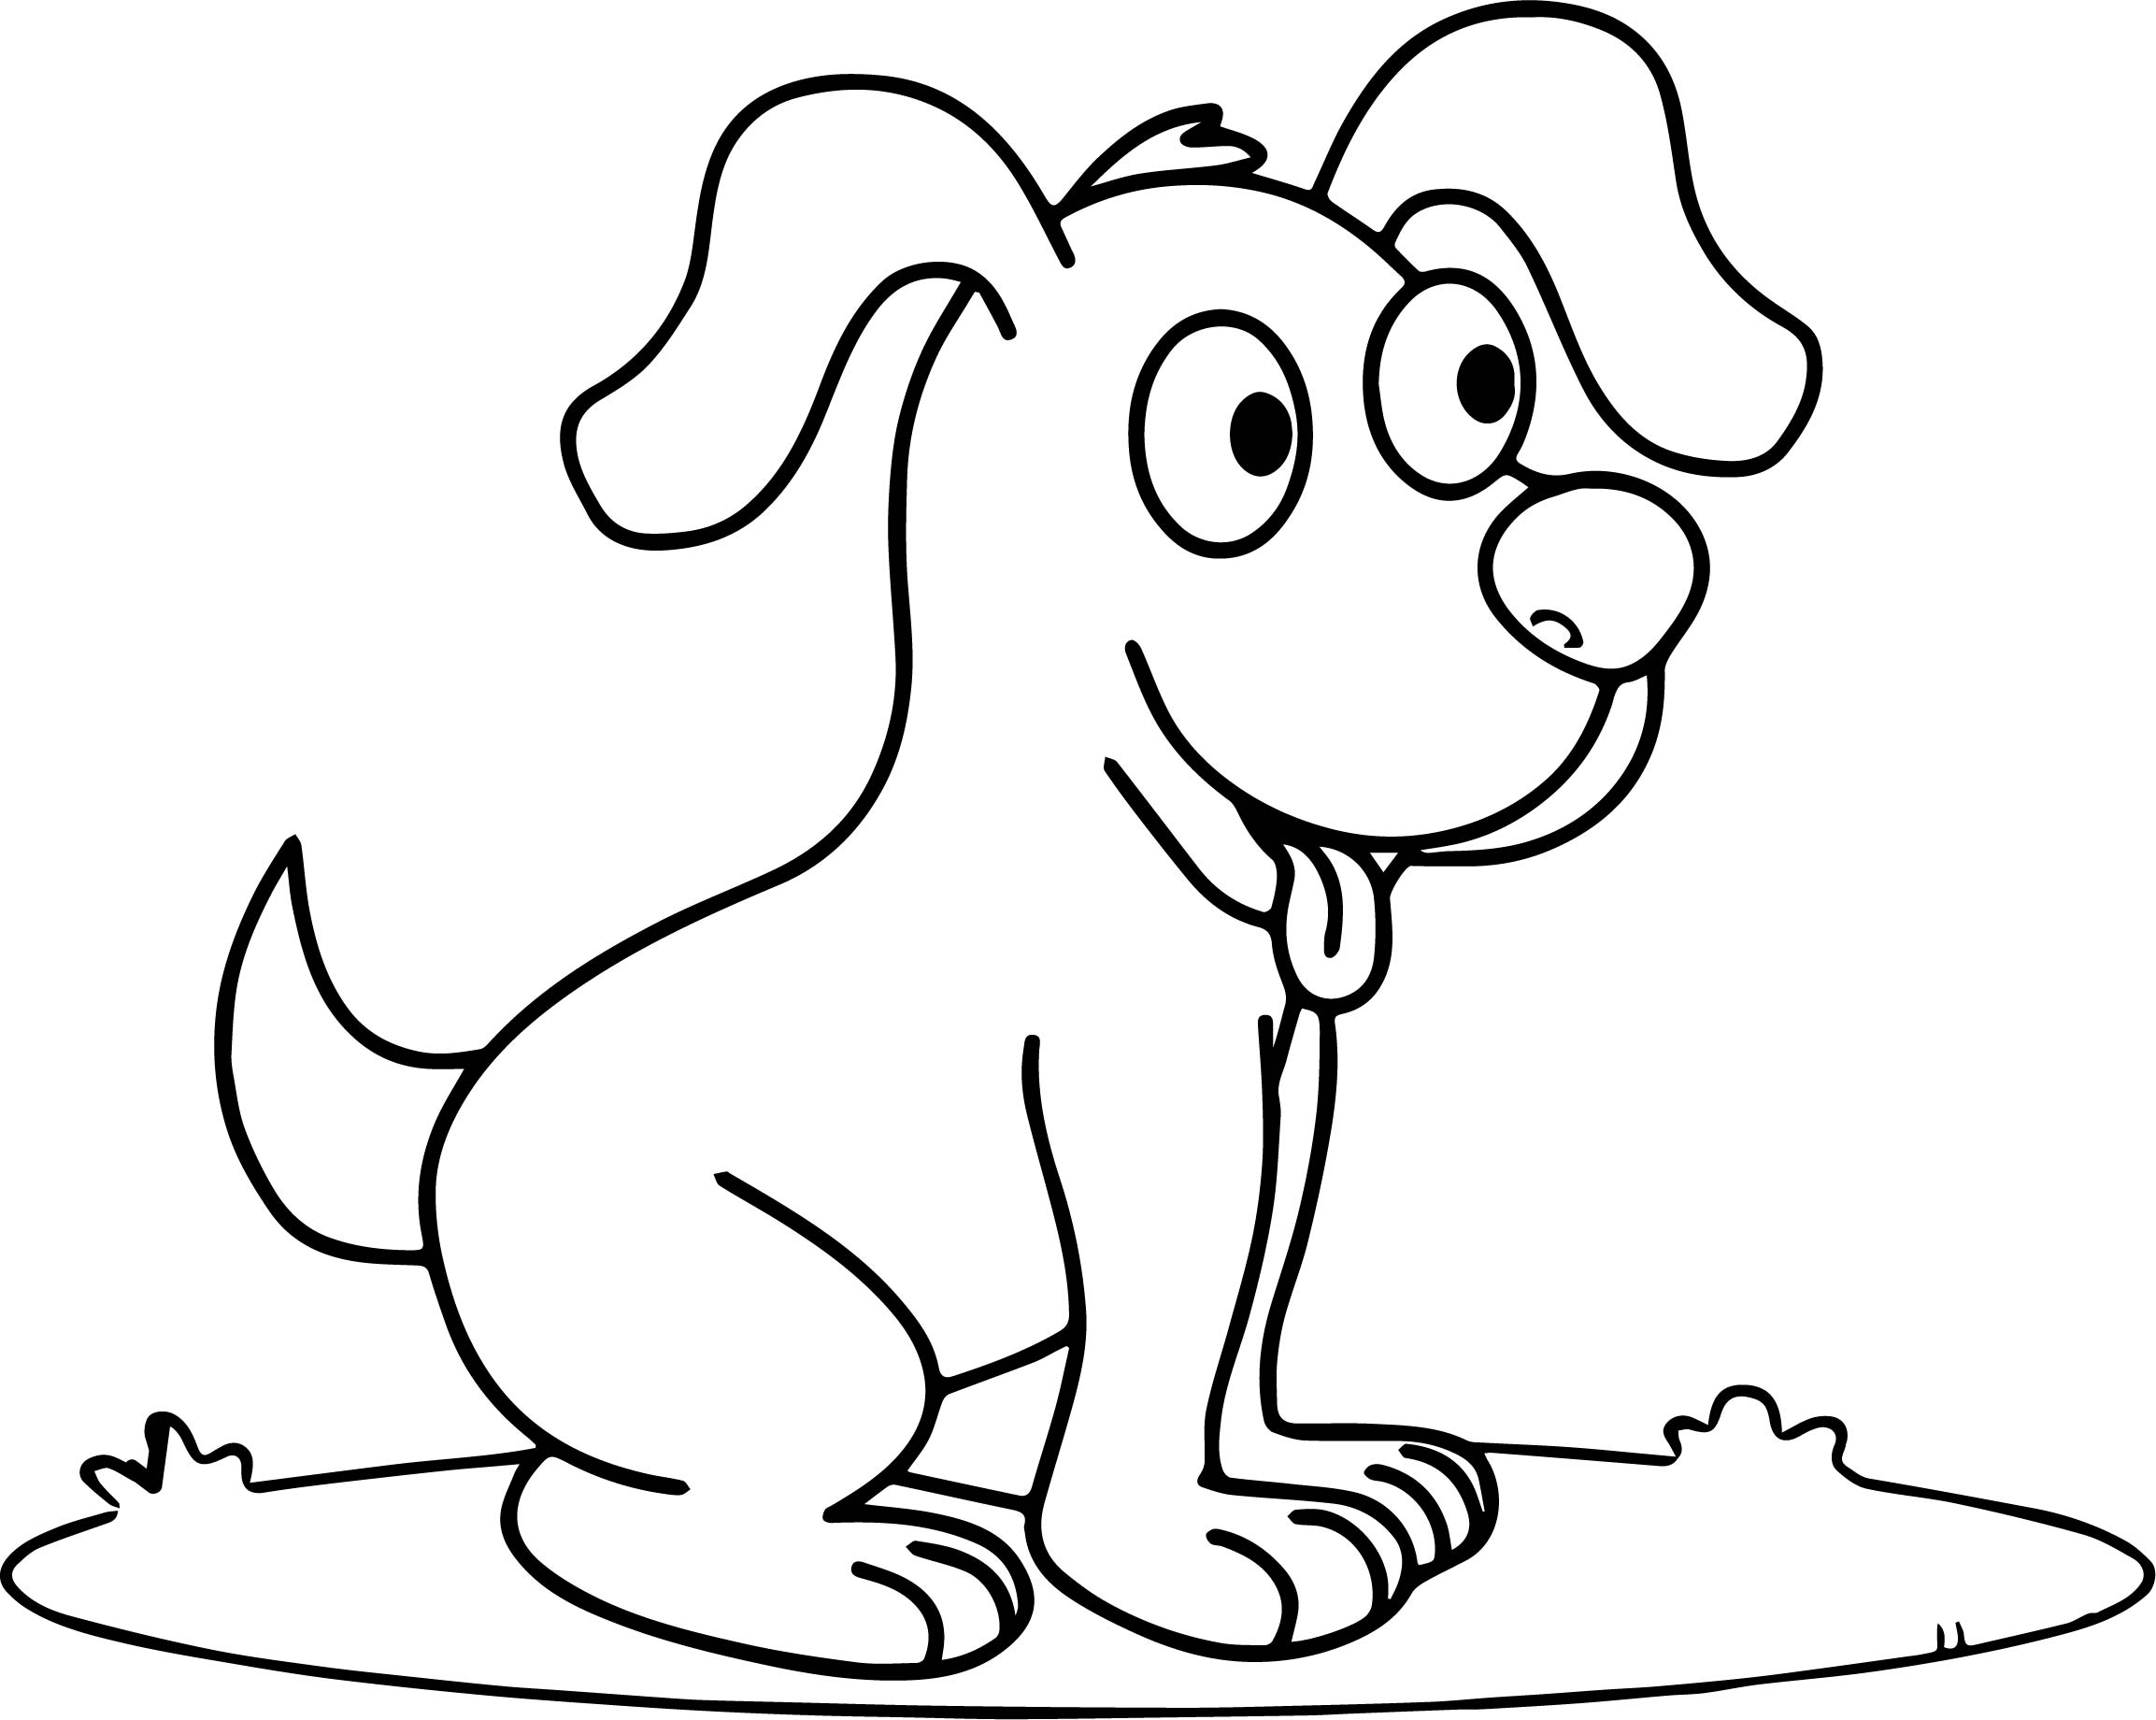 coloring cartoon dog dog coloring cartoon for all ages k5 worksheets cartoon dog coloring